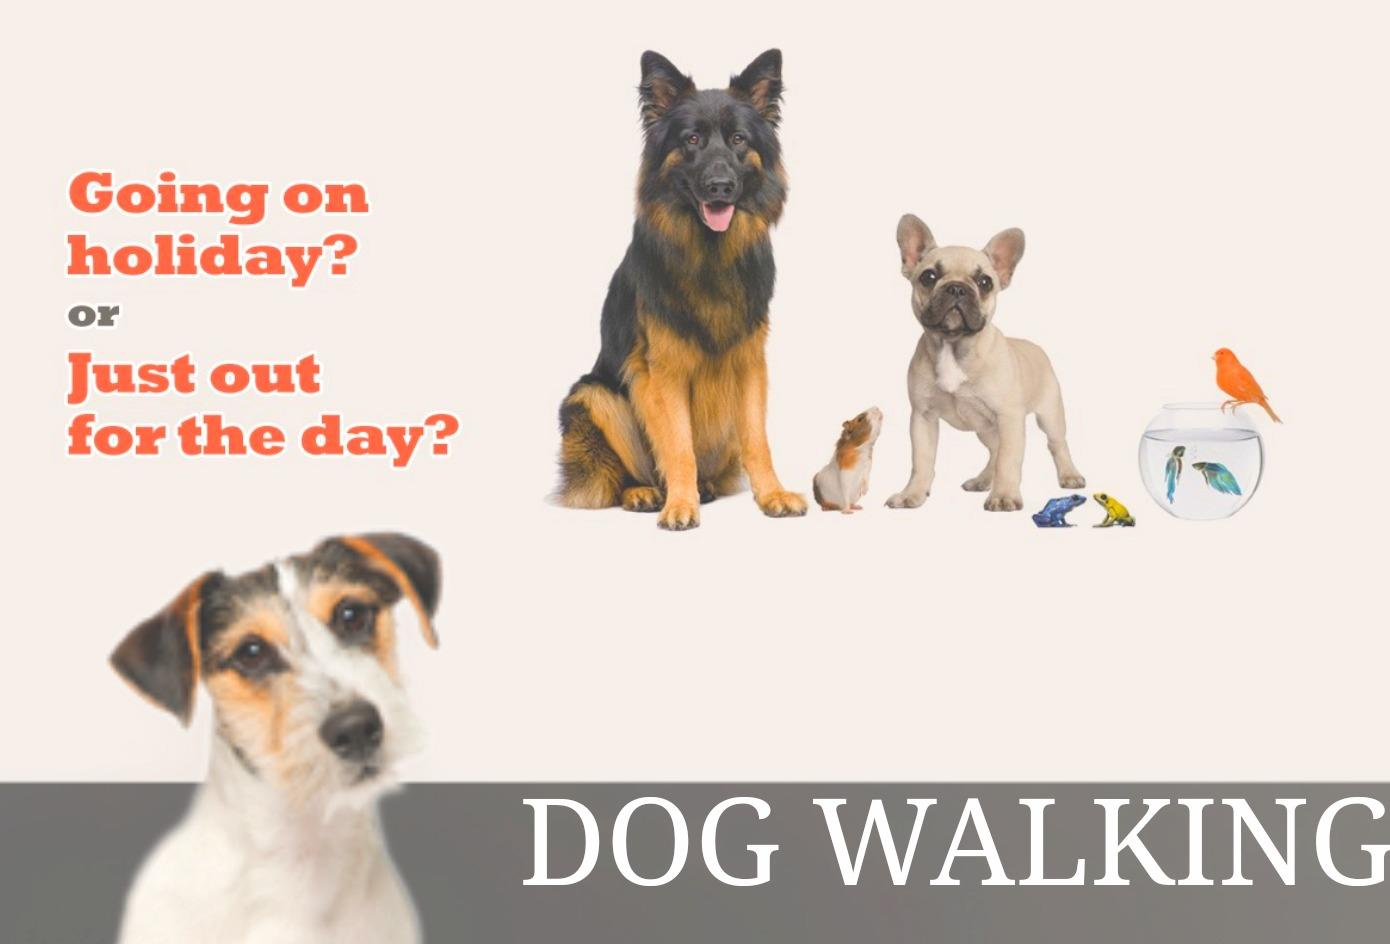 PROFESSIONAL PET SITTING & DOG WALKING